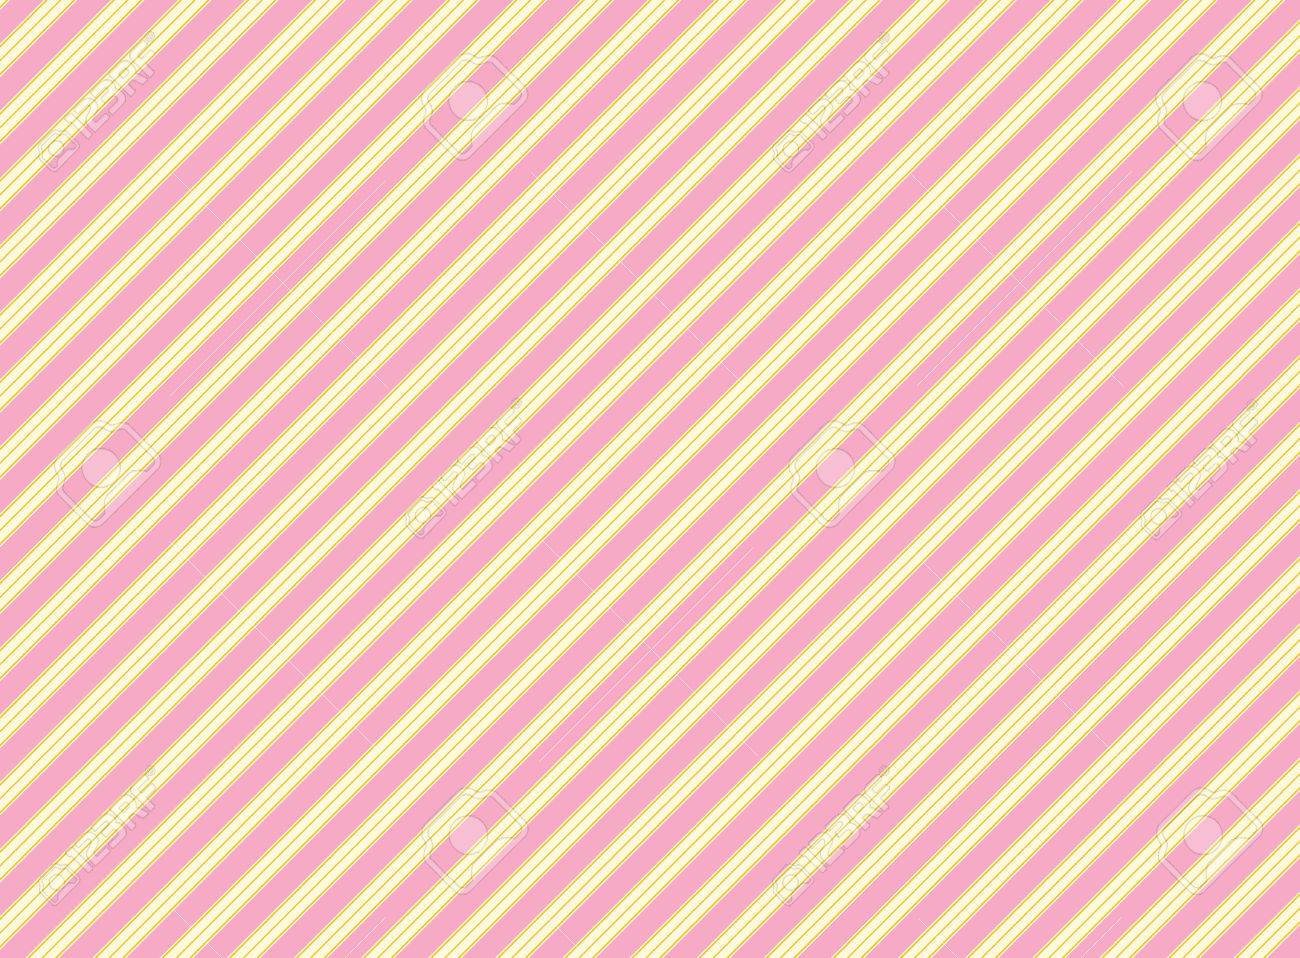 Diagonal Swatch Striped Fabric Wallpaper In Pink Gold And Ecru That Matches Valentine Borders